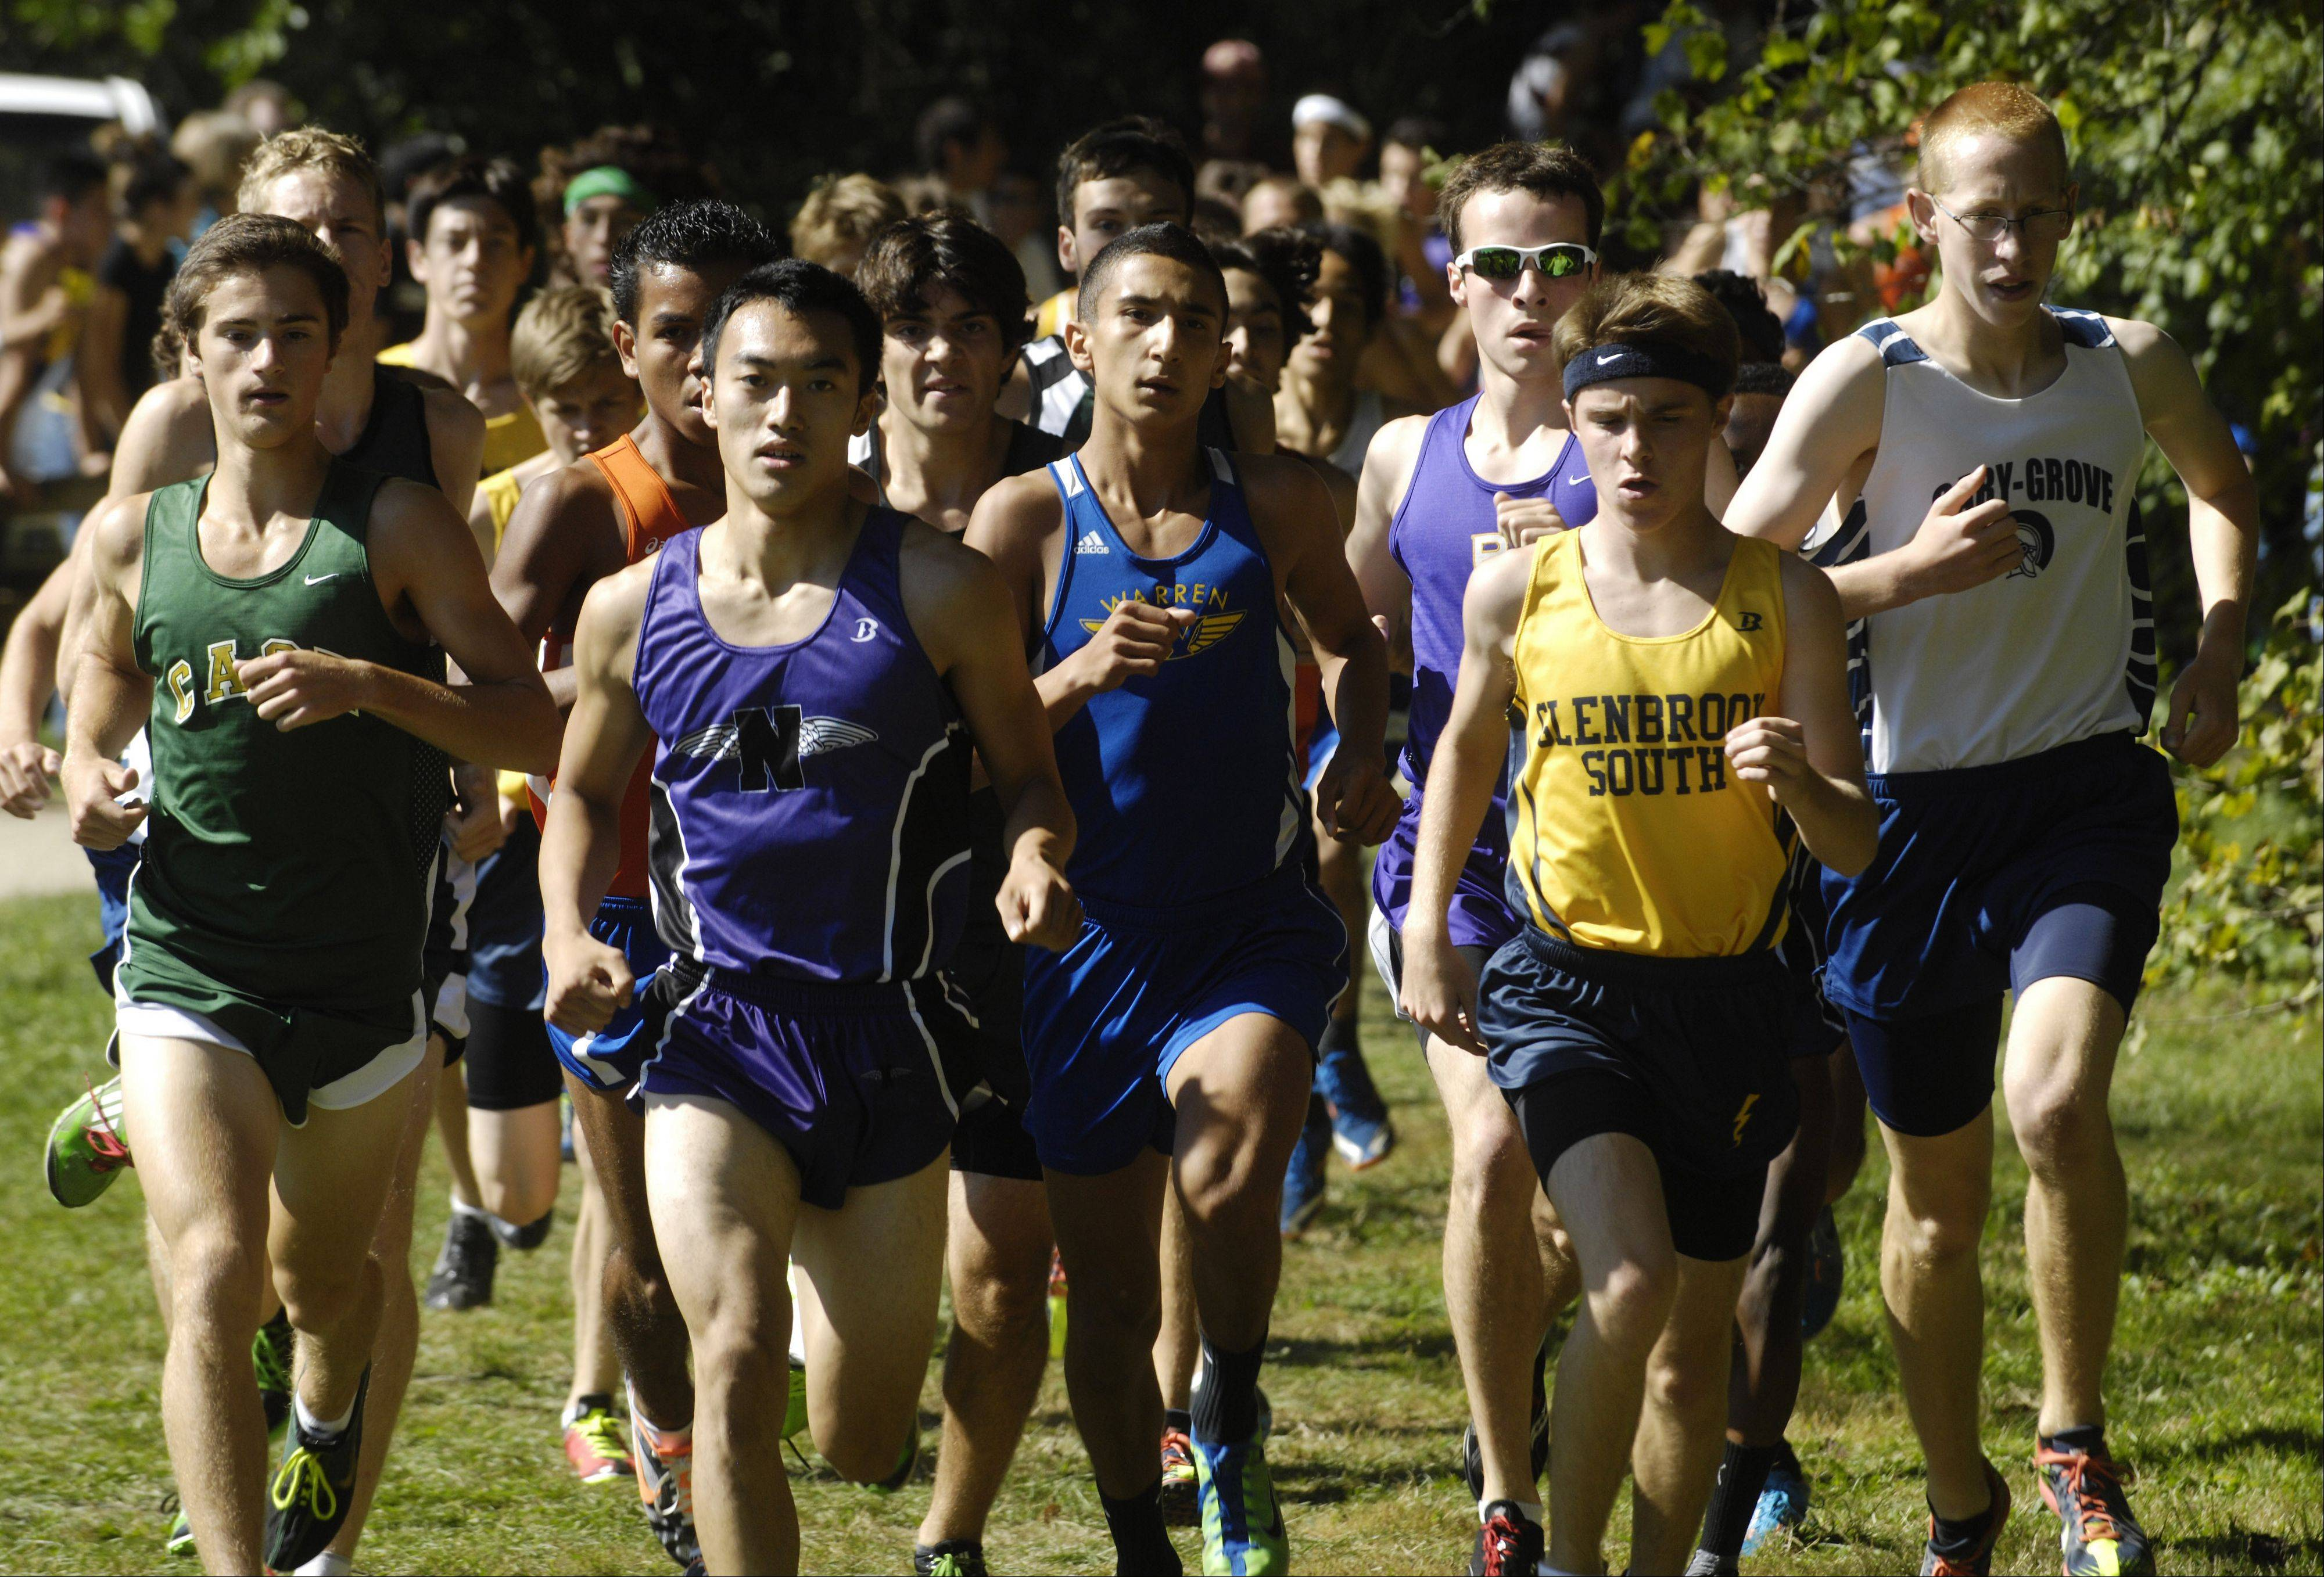 Runners are tightly grouped in the early stages of the boys' race during the Warren cross country invite in Gurnee on Saturday.